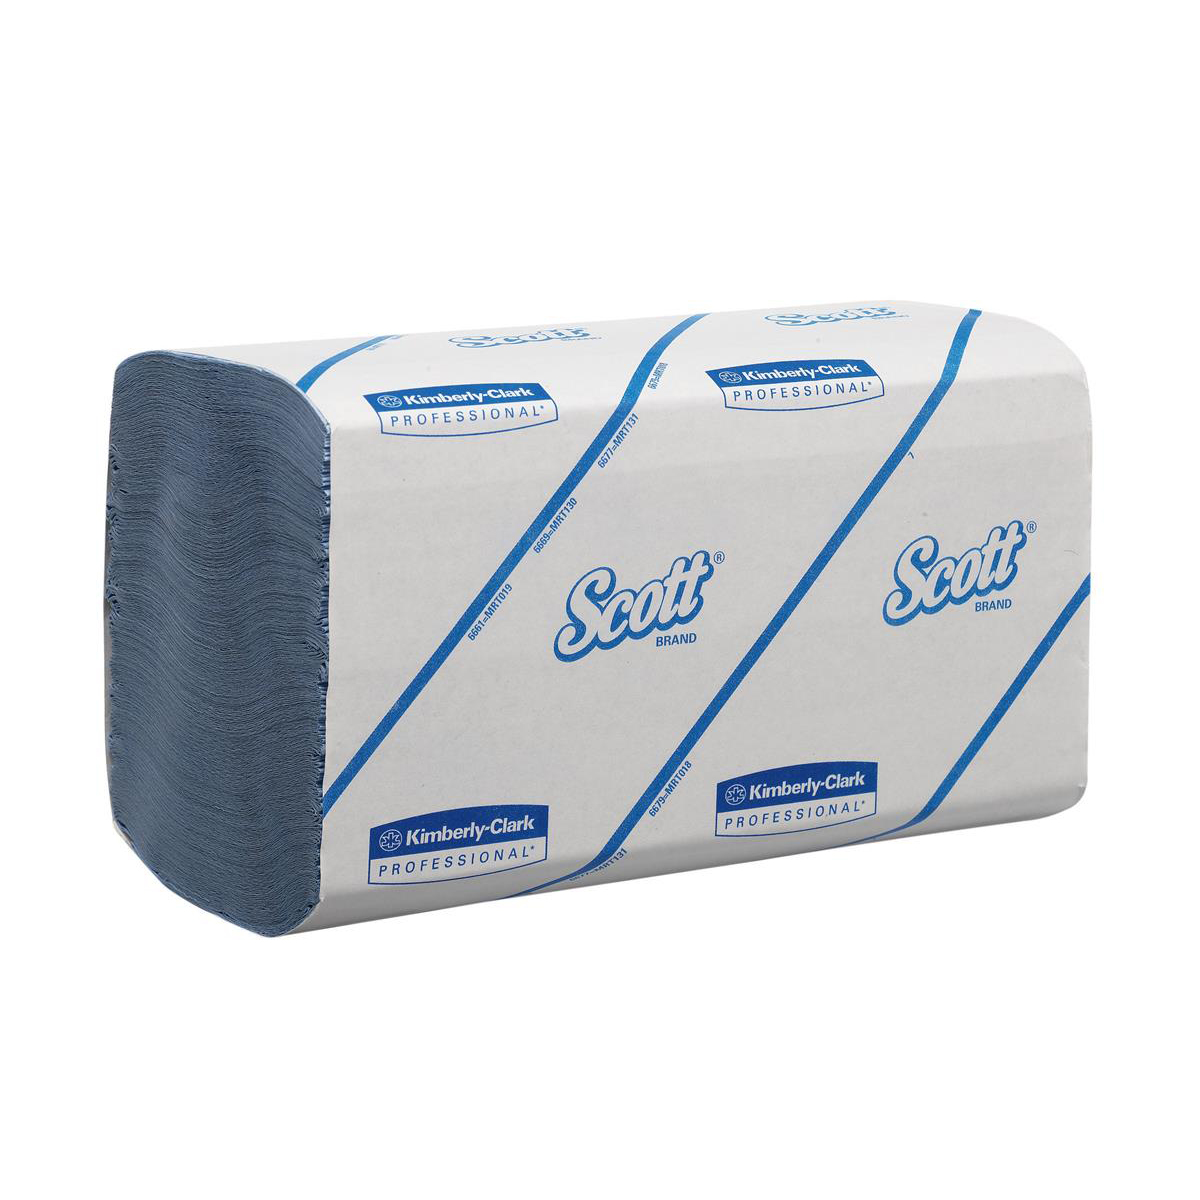 Hand towels Scott Performance Hand Towels Blue 1 Ply 315x215mm 212 Towels per Sleeve Ref 6664 [Pack 15 Sleeves]